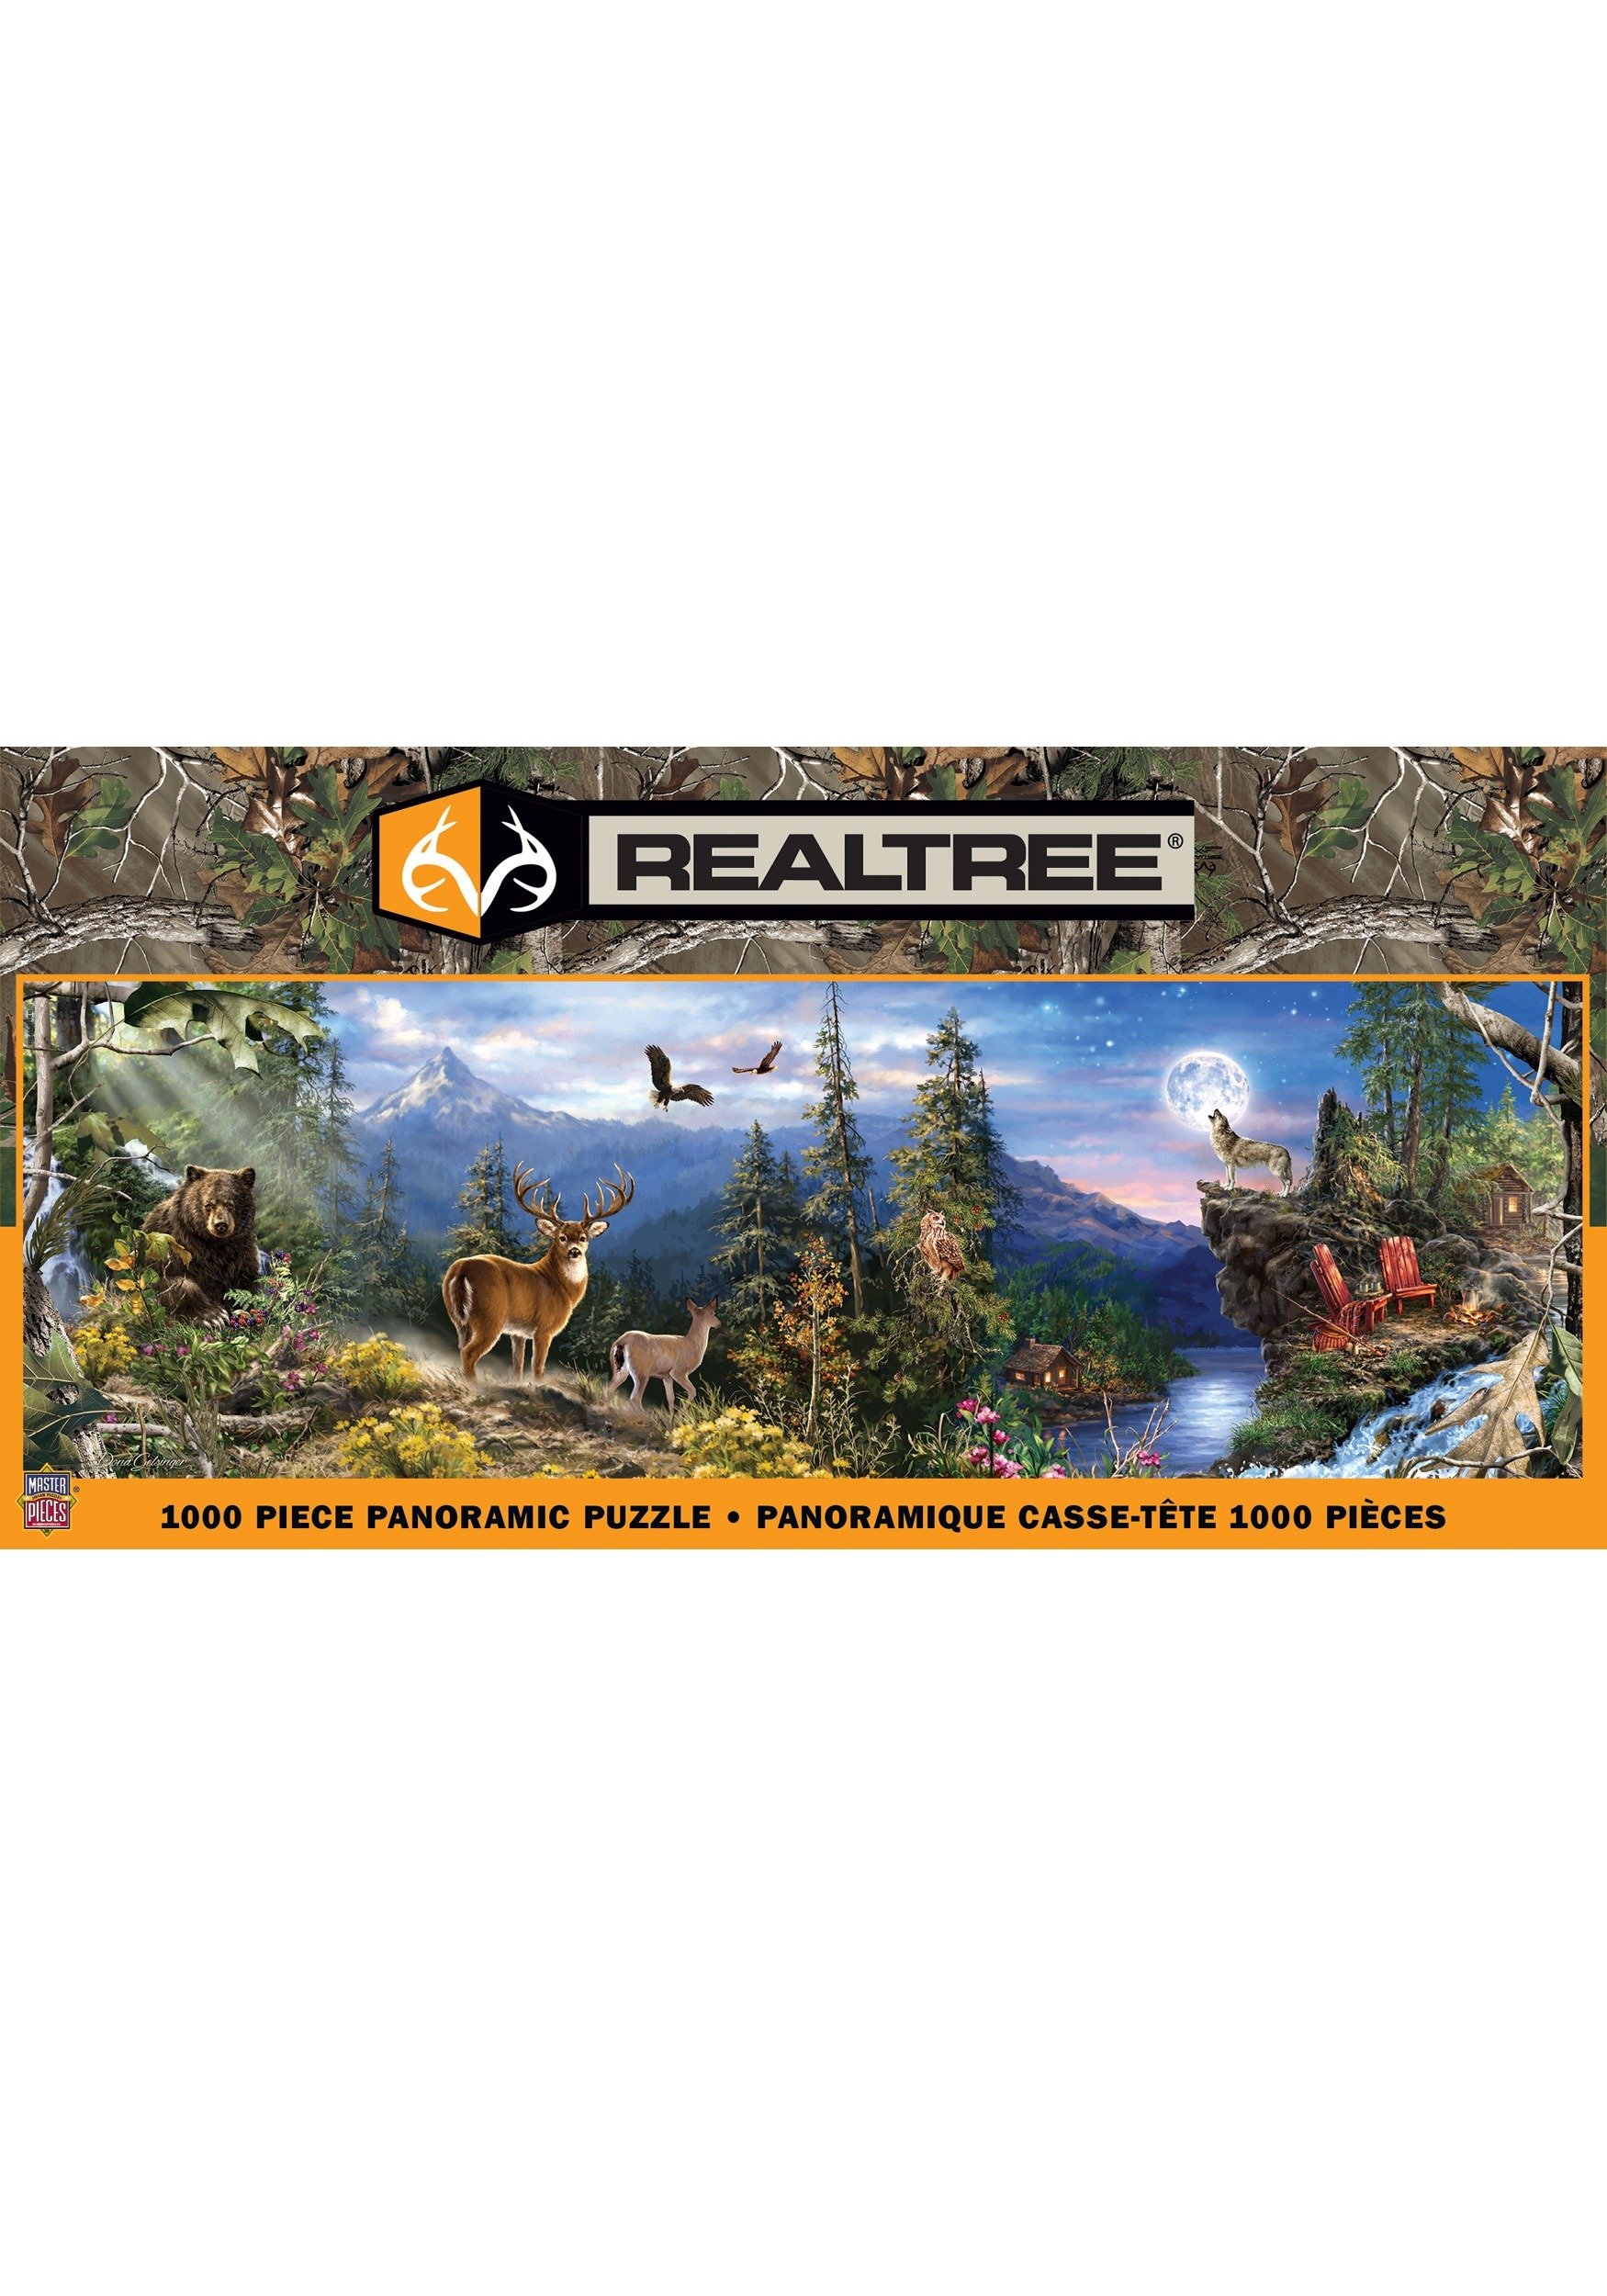 Realtree Panoramic 1000 Piece MasterPieces Puzzle